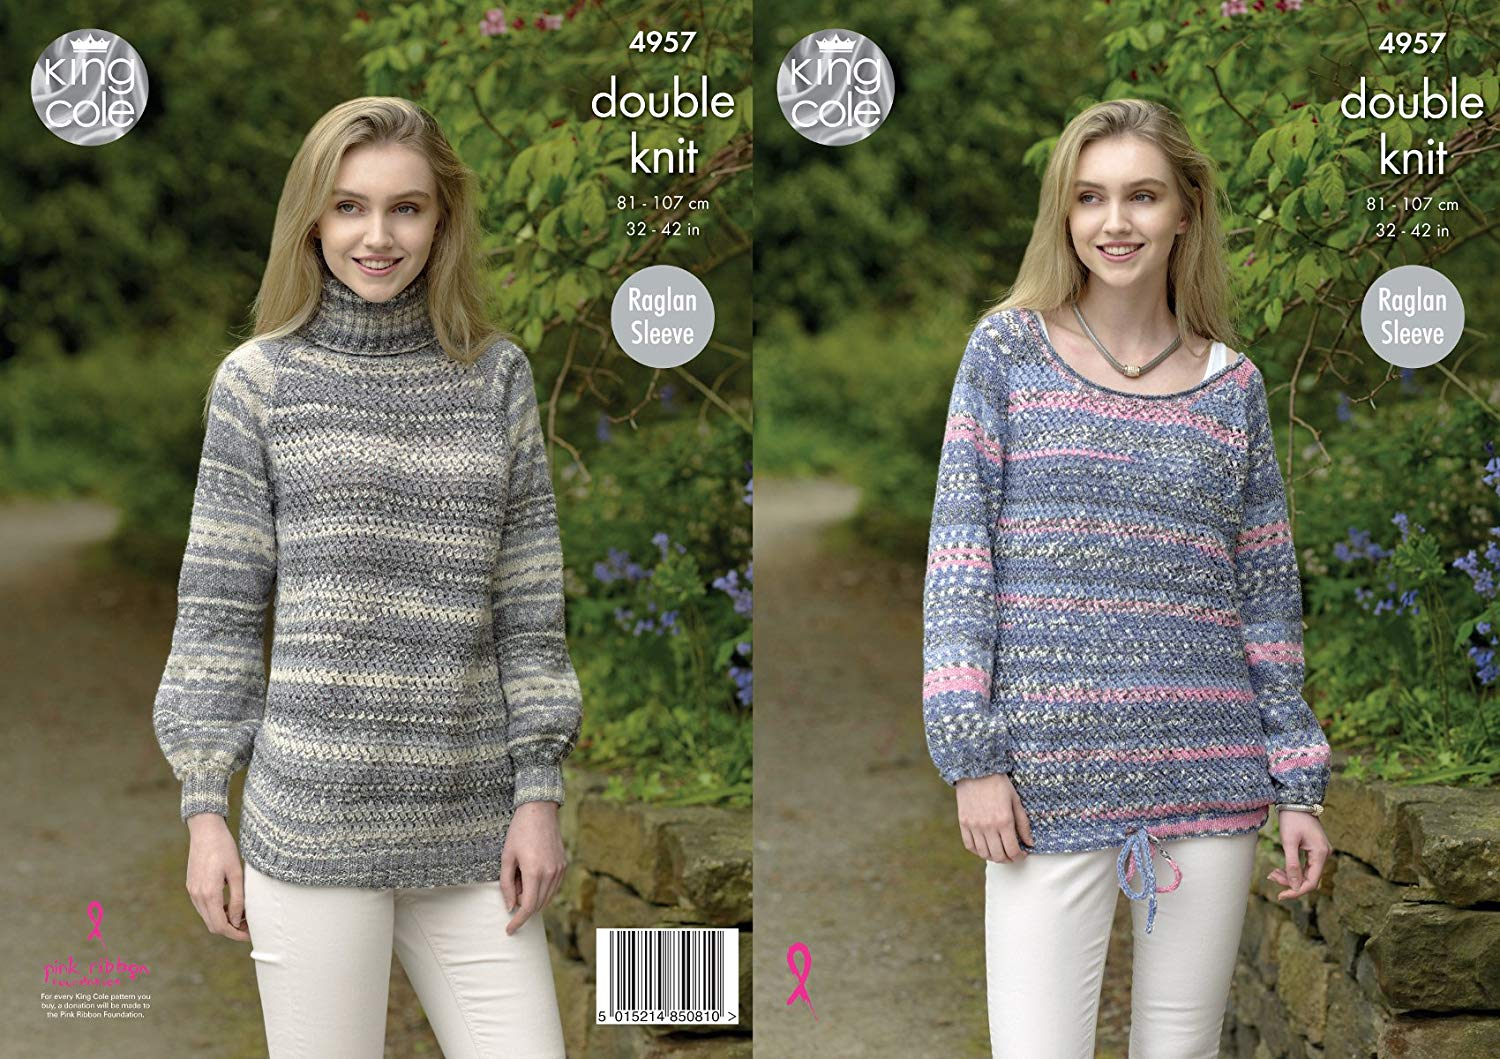 8b1ca1182 Get Quotations · King Cole Ladies Double Knitting Pattern Womens Raglan  Sleeve Polo or Scoop Neck Sweater (4957